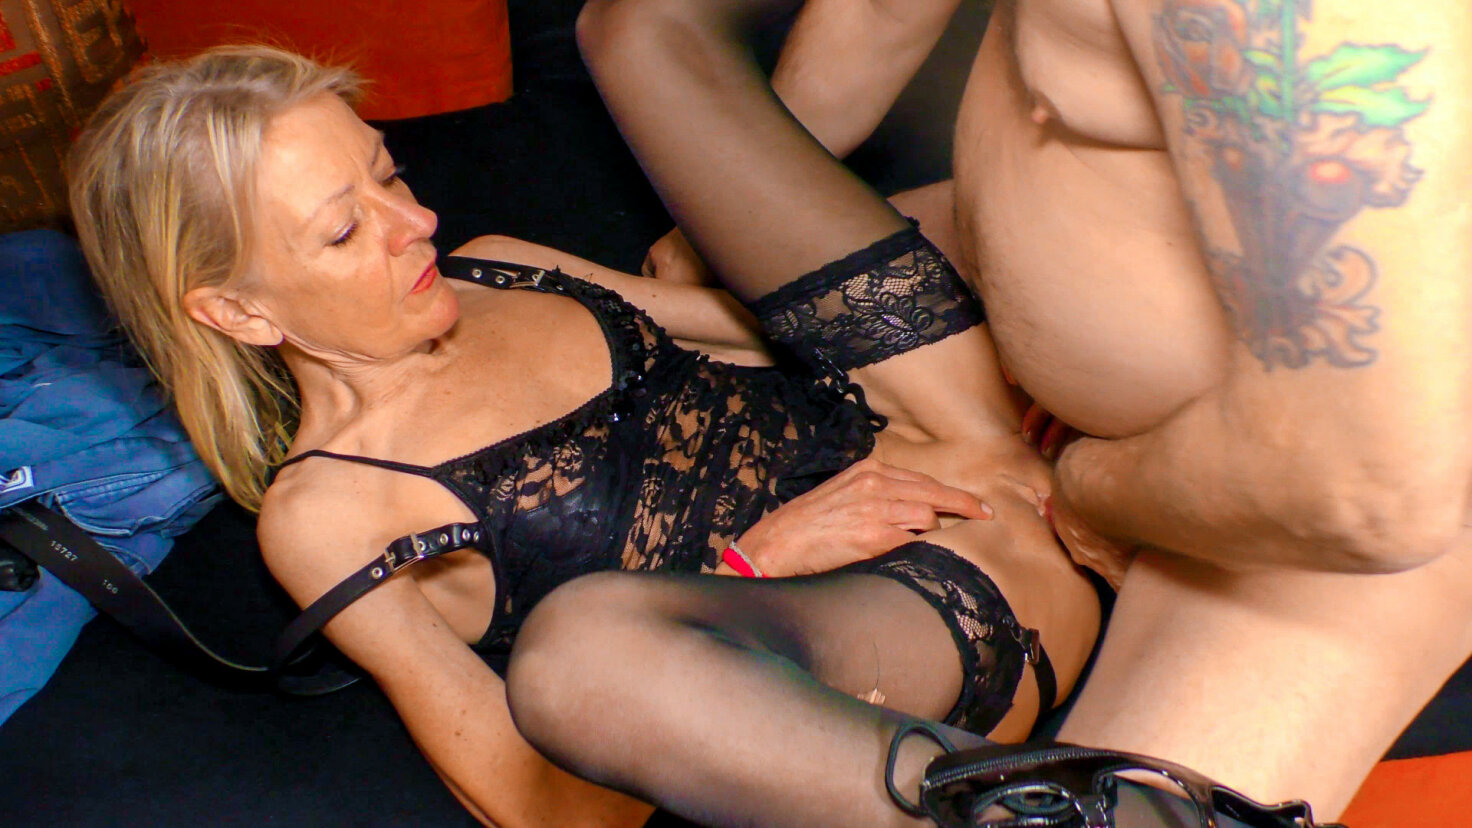 Mature German wife with a dirty granny-next-door look Margit S. loves cock